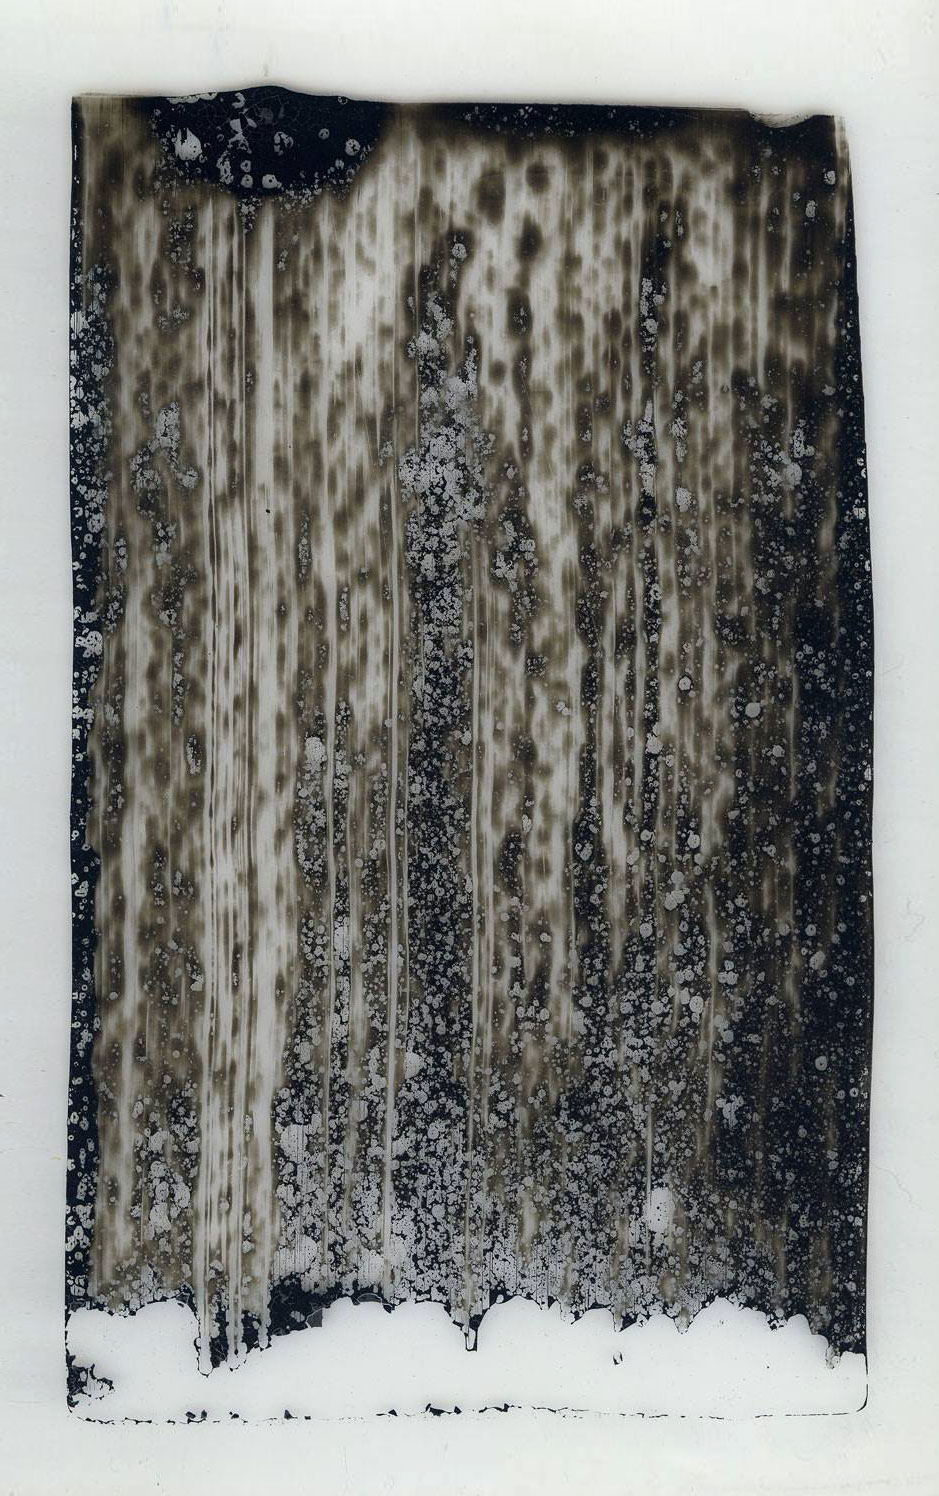 VEIL (I)  2014  Japanese ink on archival Polymex with conservation board  61.5 x 42.4 cm   (private collection UK)